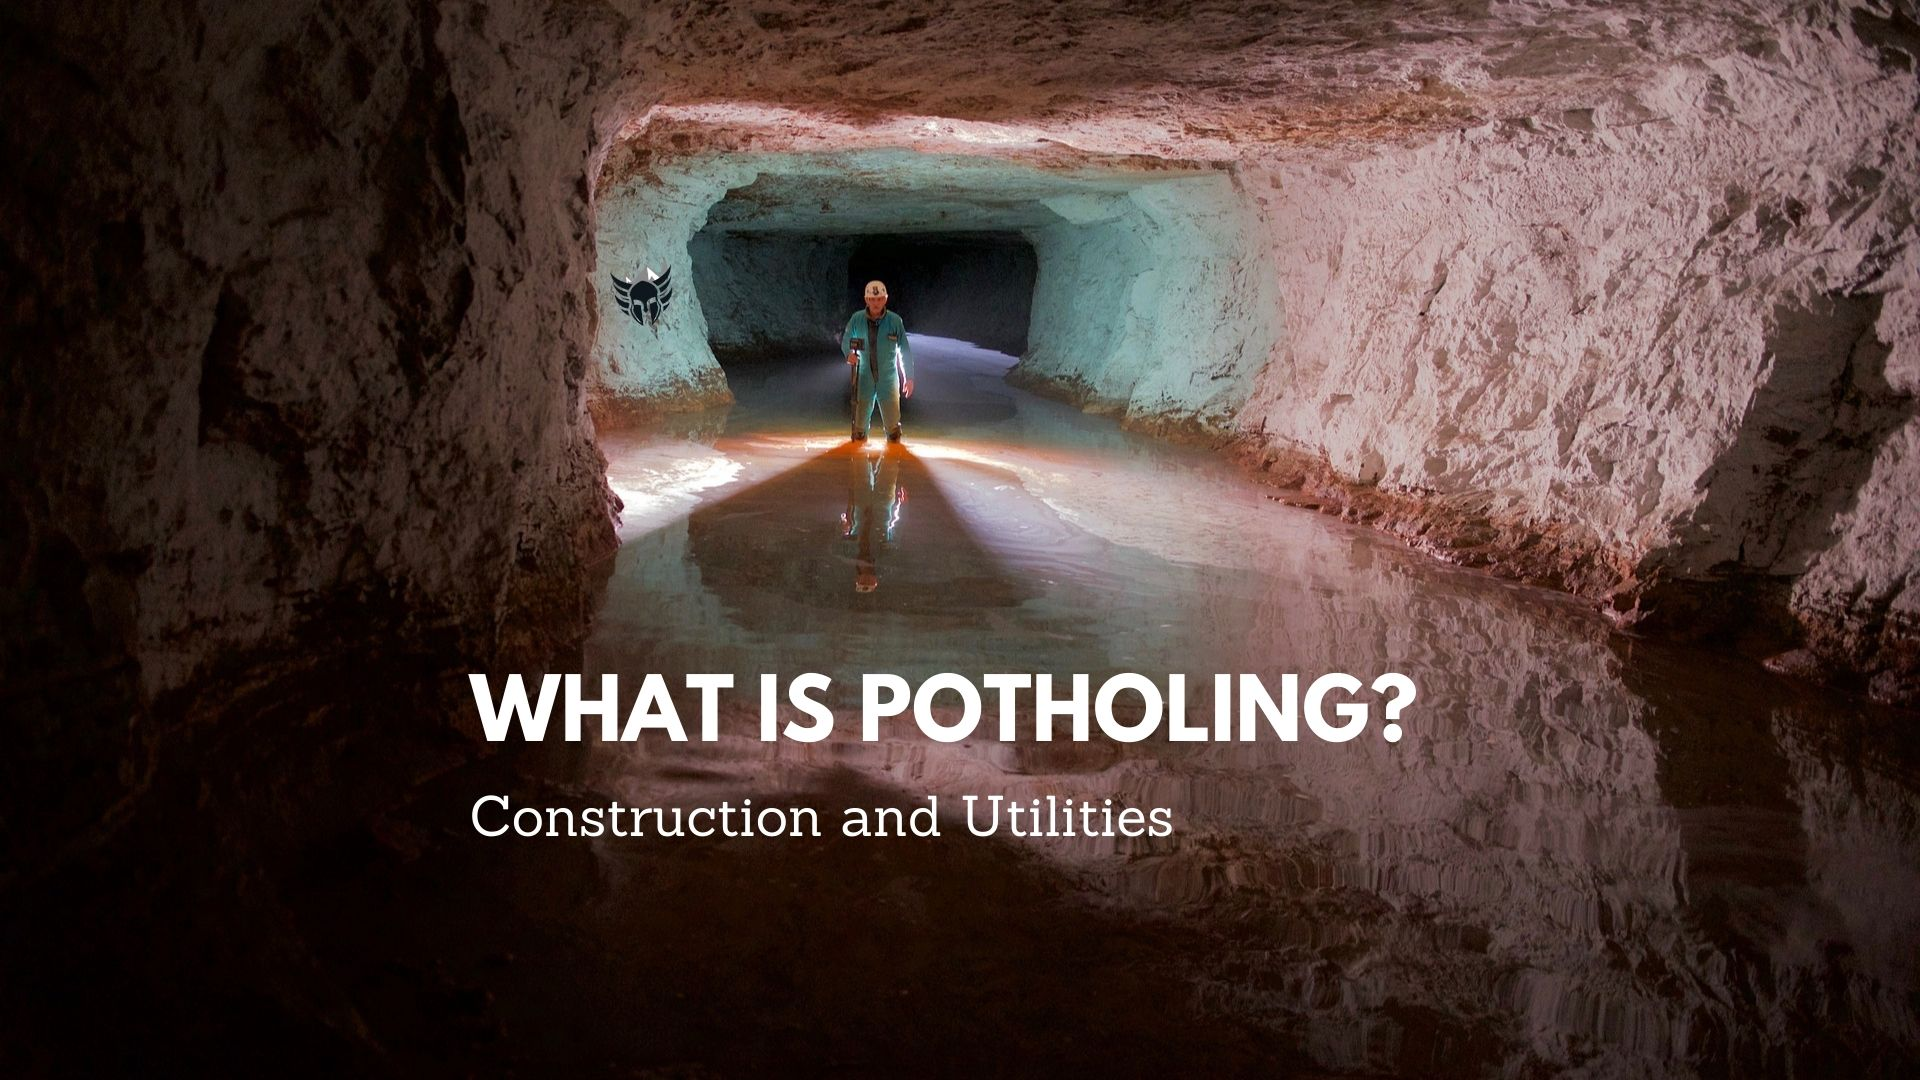 What is Potholing